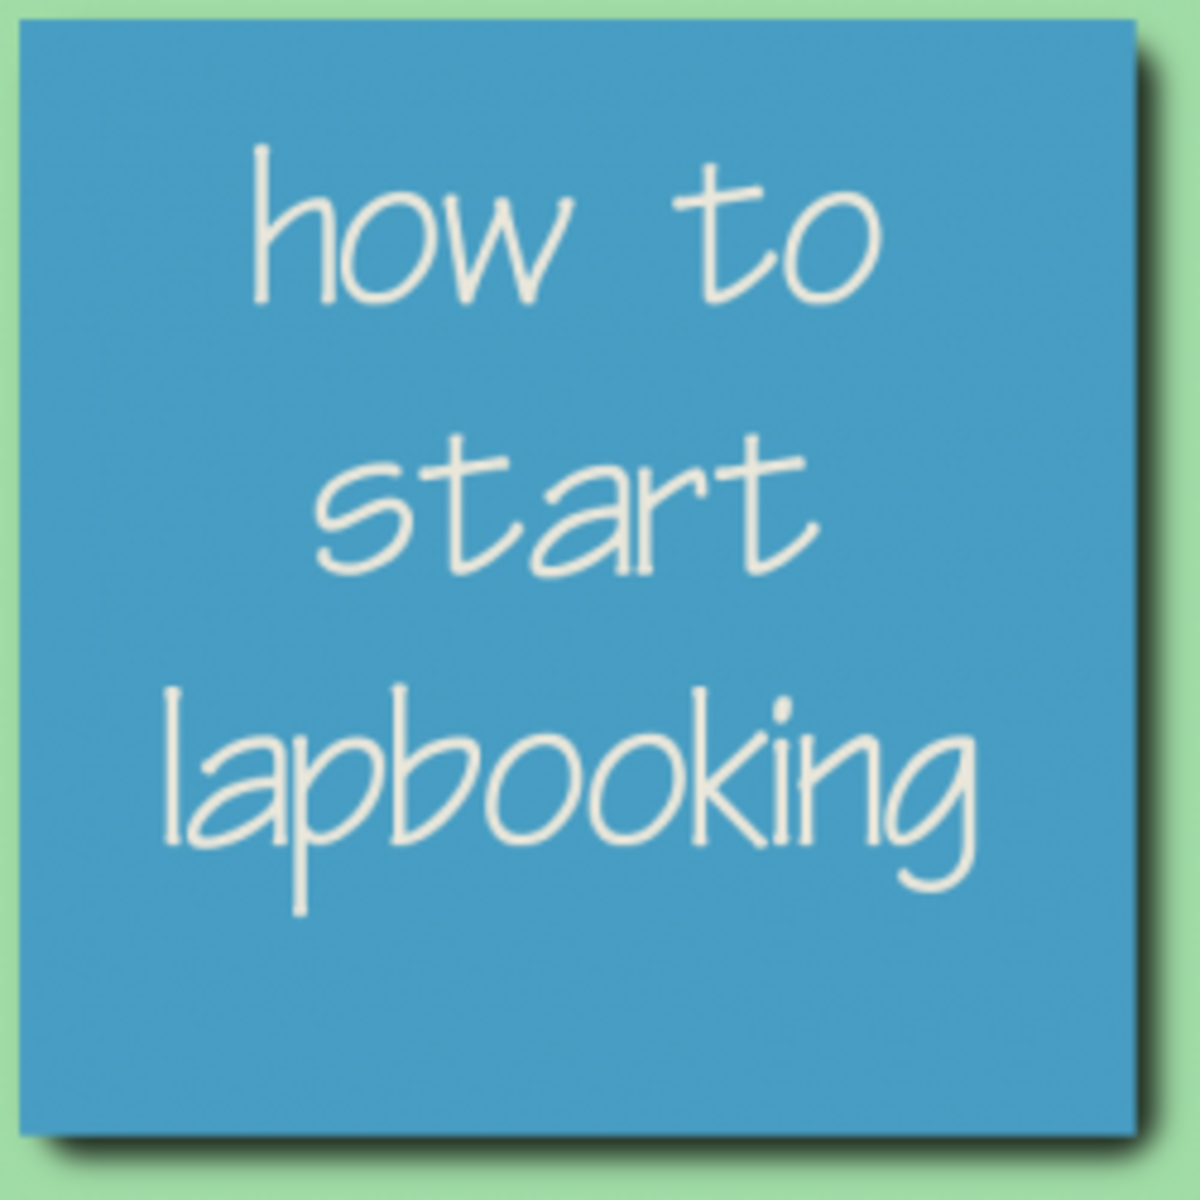 A Super Easy Way To Begin Lapbooking : The Simplest Lapbook Ever